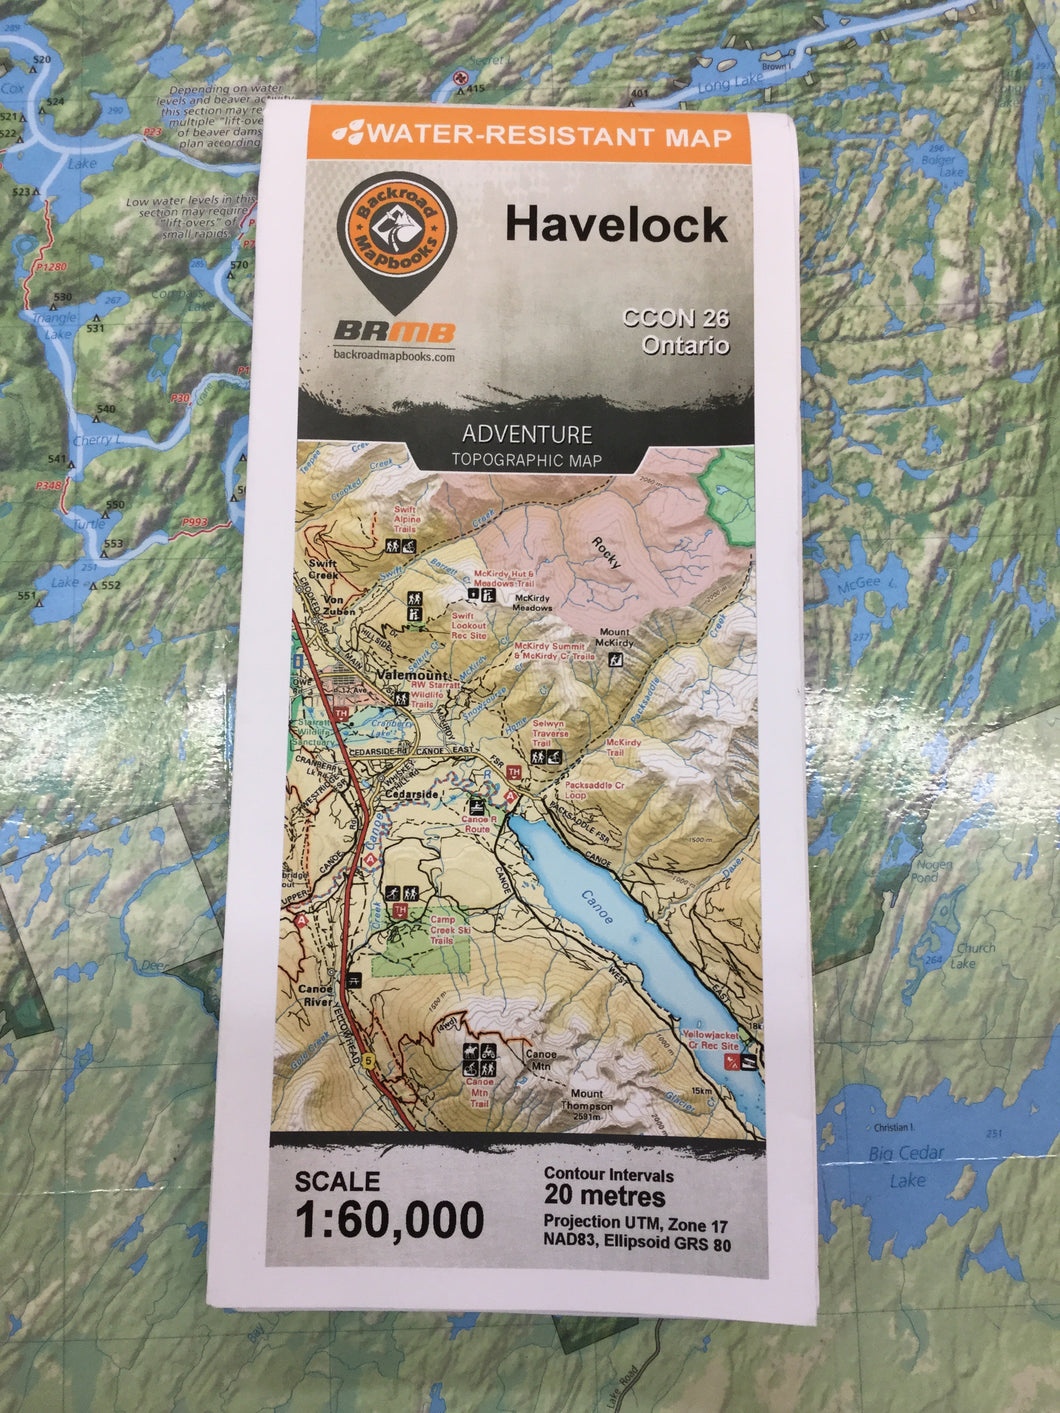 Havelock topographic map by Backroad Mapbooks